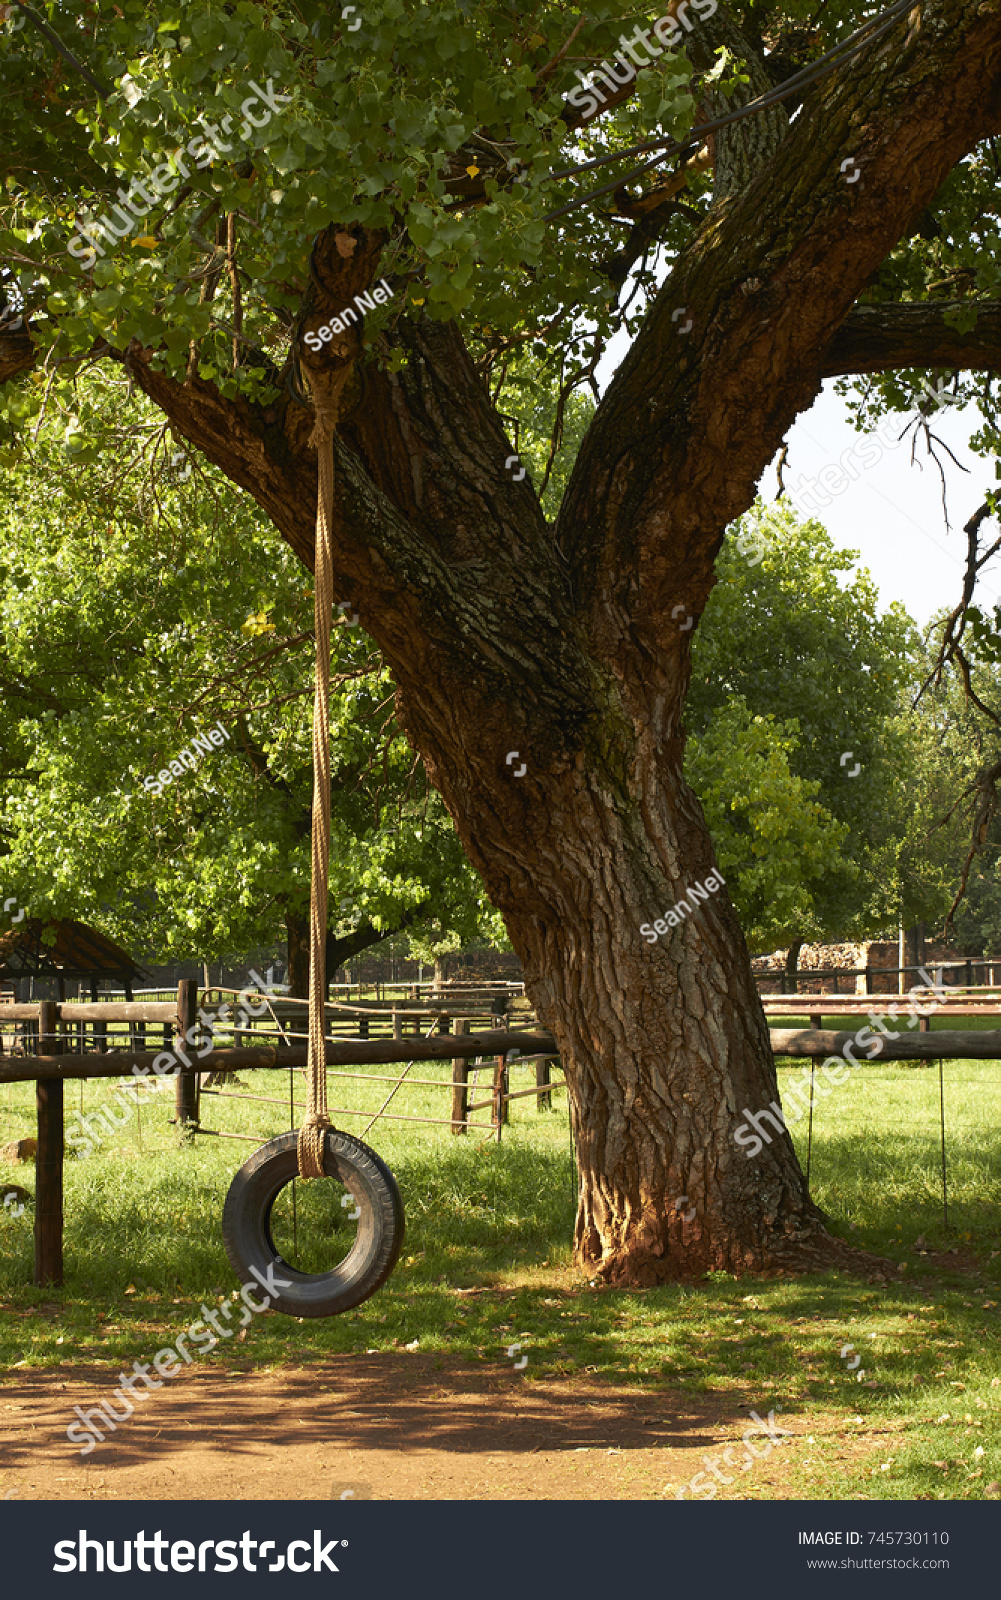 Old style tire swing hanging from a